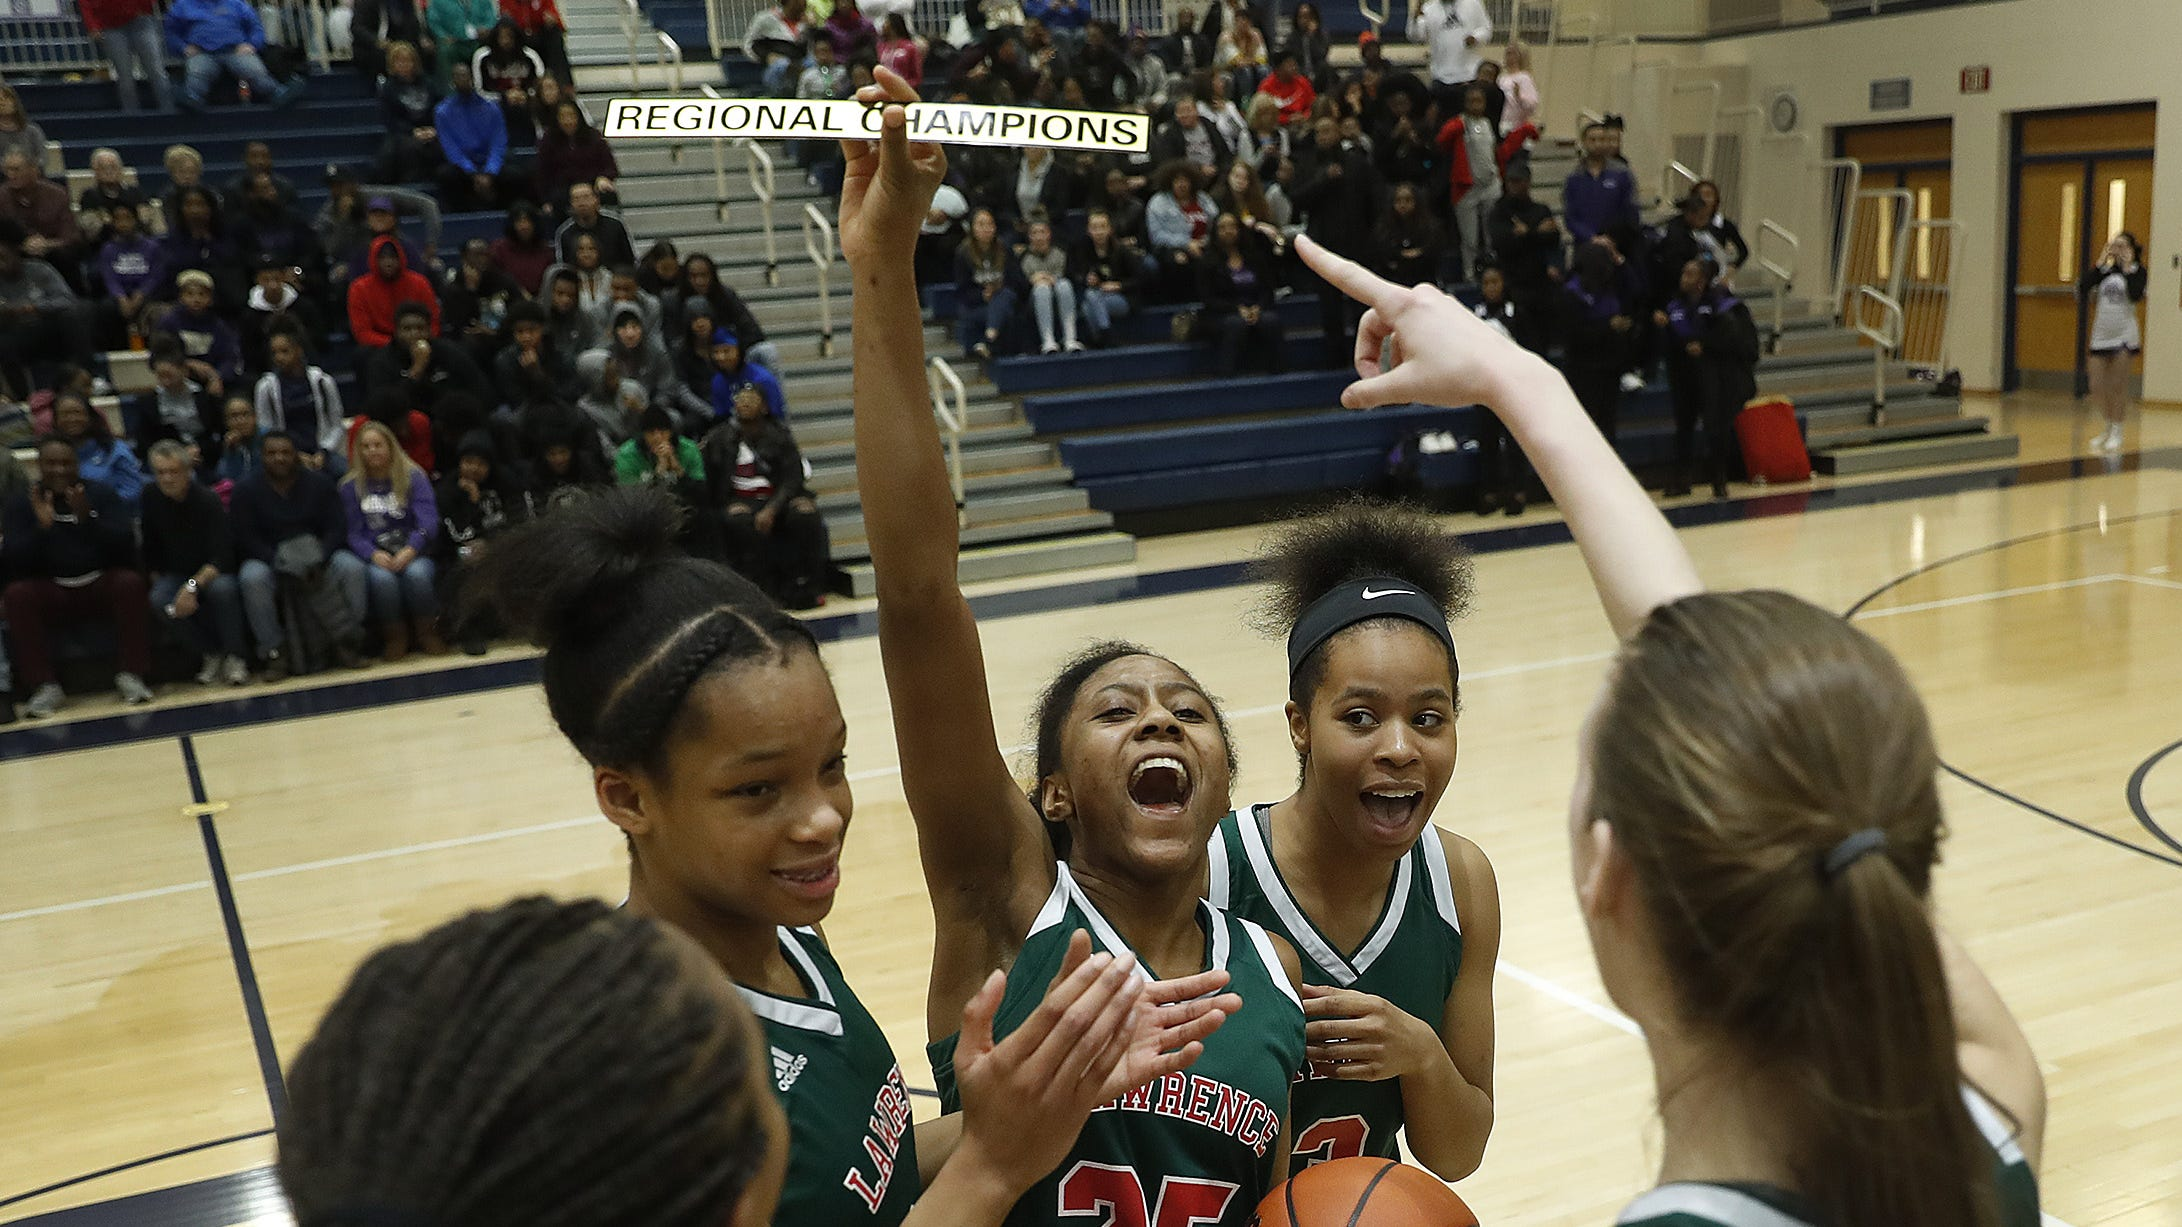 Lawrence North's star left, but the Wildcats just got stronger. 'We gained more of a team.'